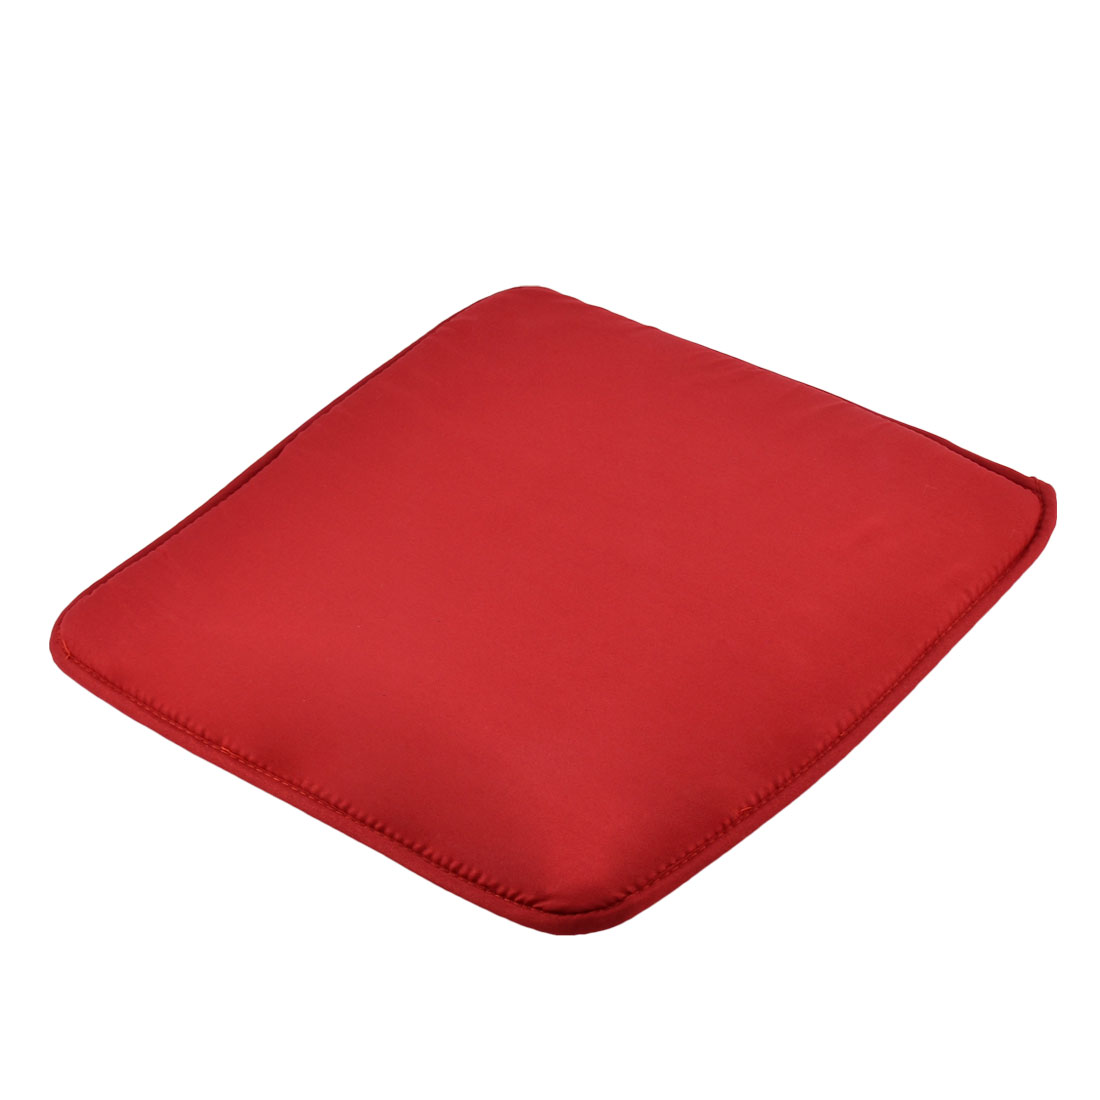 Home Office Sponge Solid Anti Slip Seat Chair Cushion Pad Cover Carmine 39 x 39cm